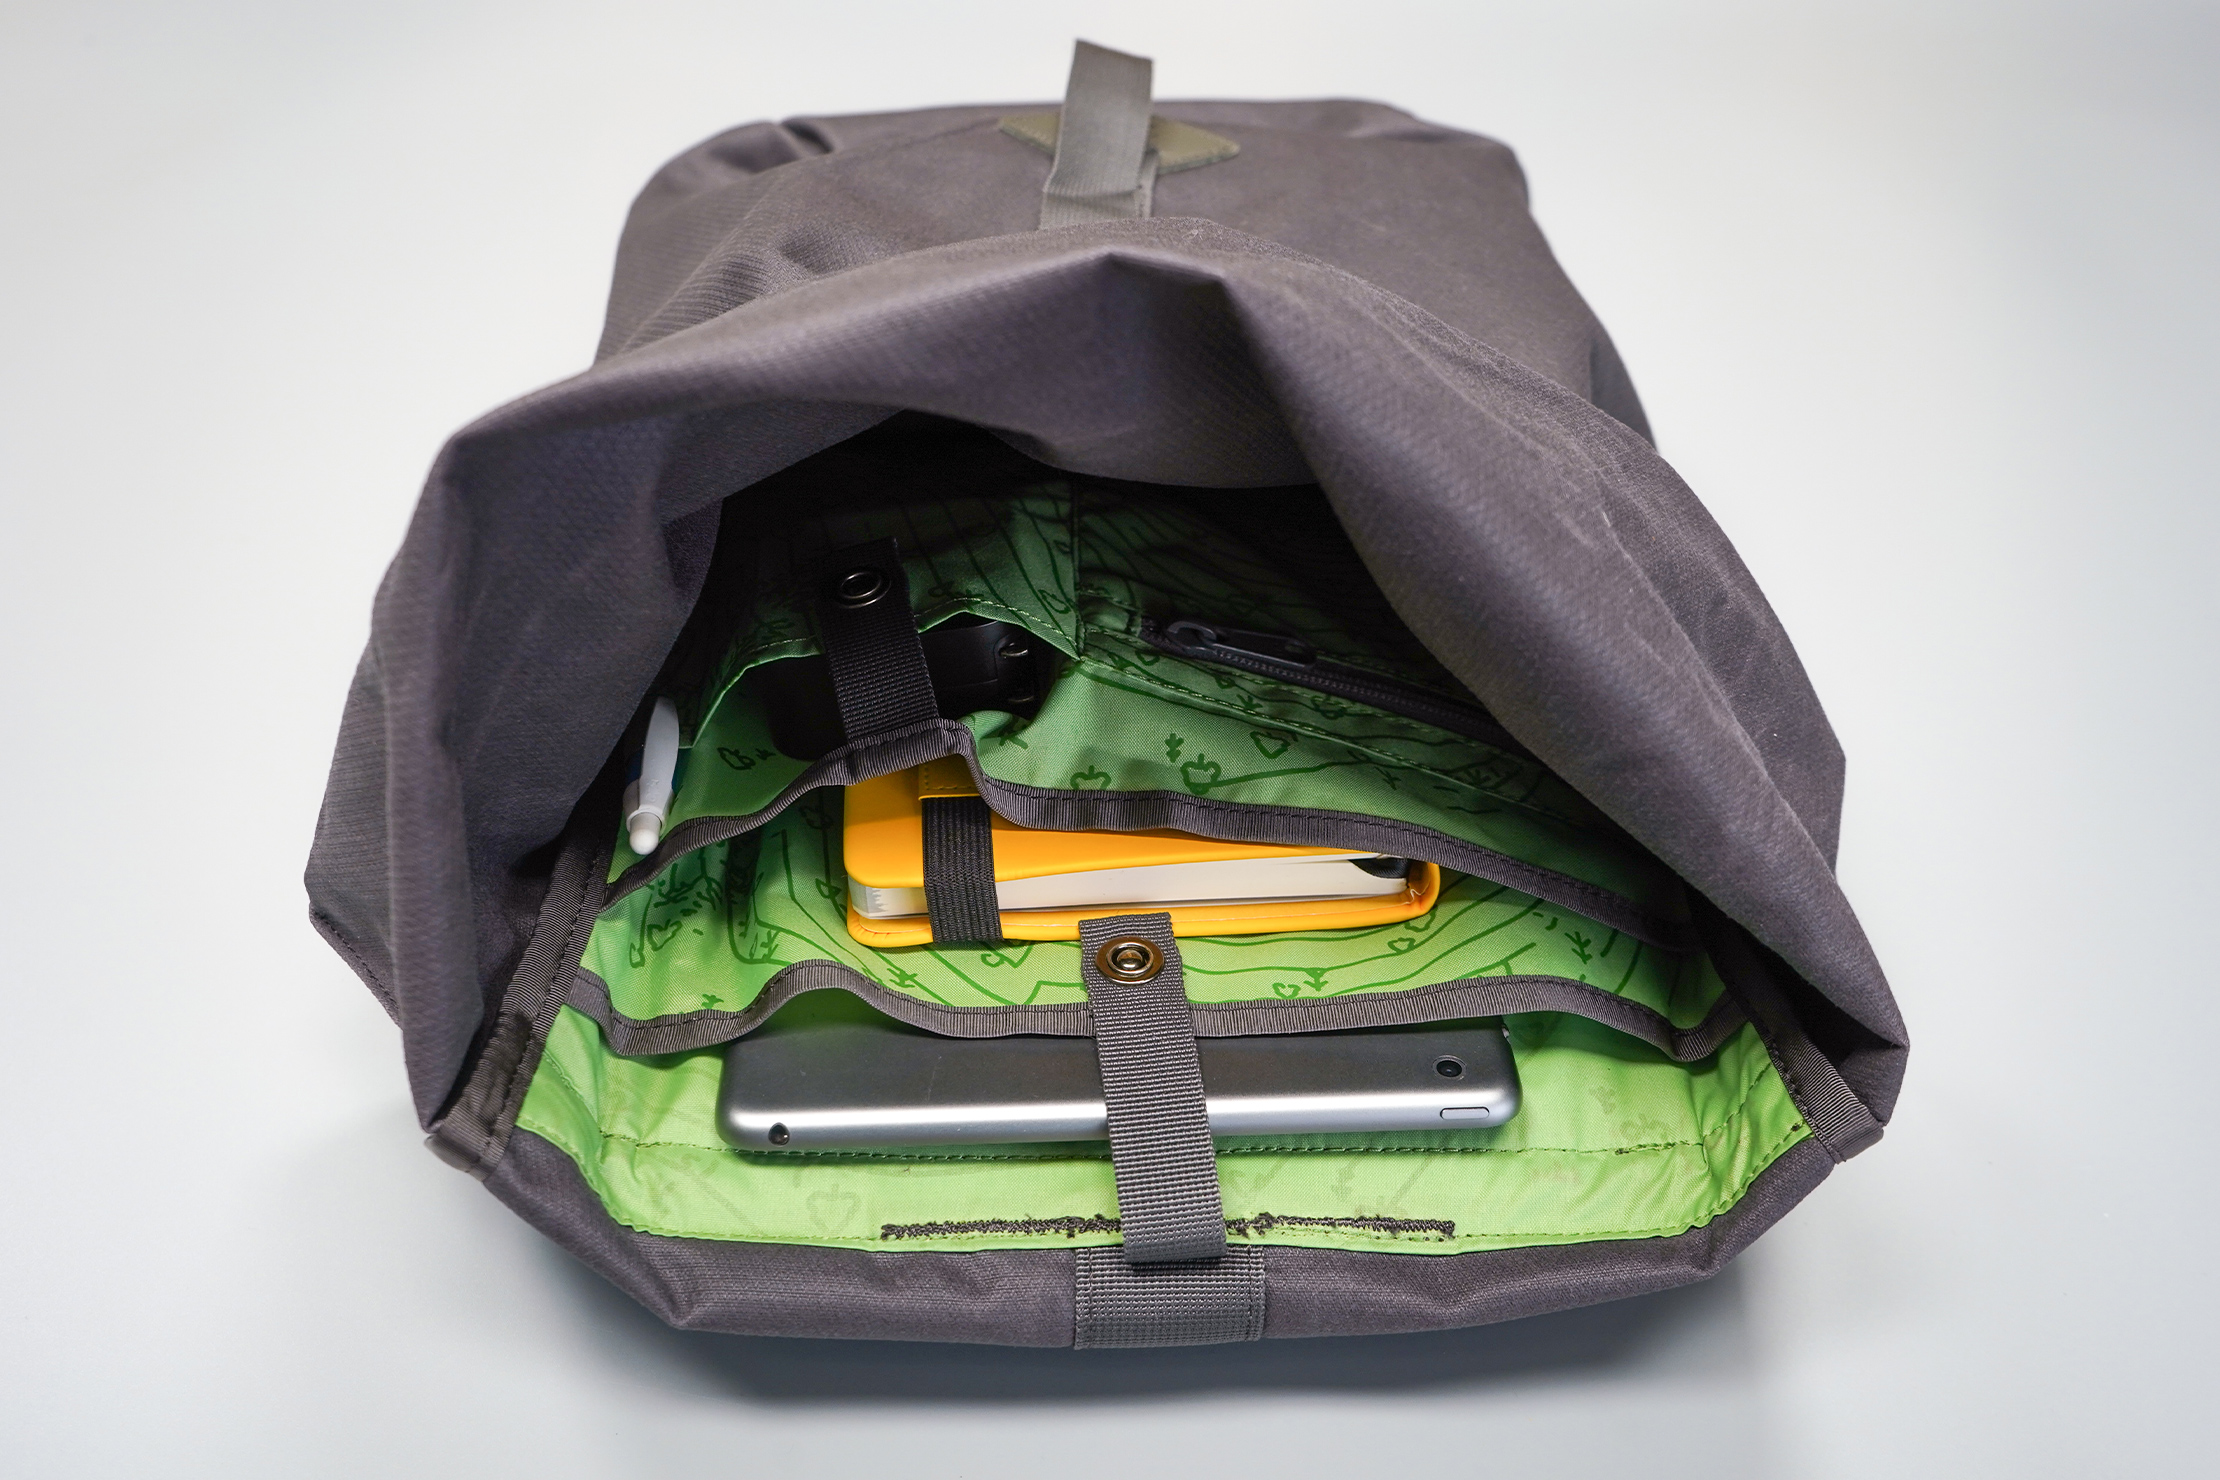 Millican Smith Roll Pack 18L   A look into the cavernous interior